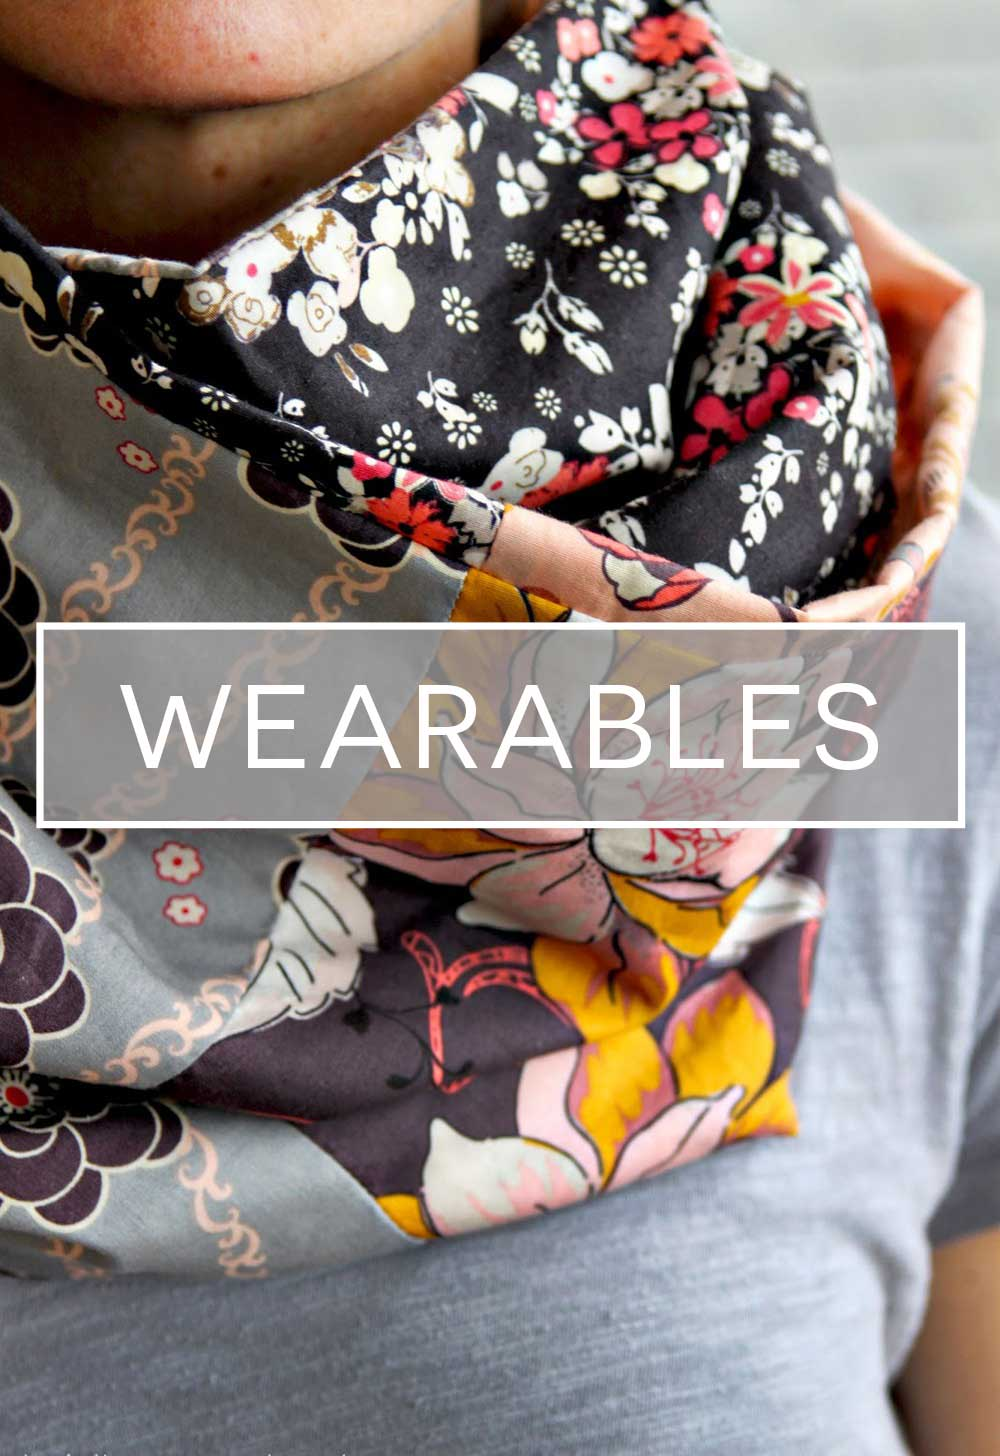 Wearables Tutorials on VeryShannon.com!